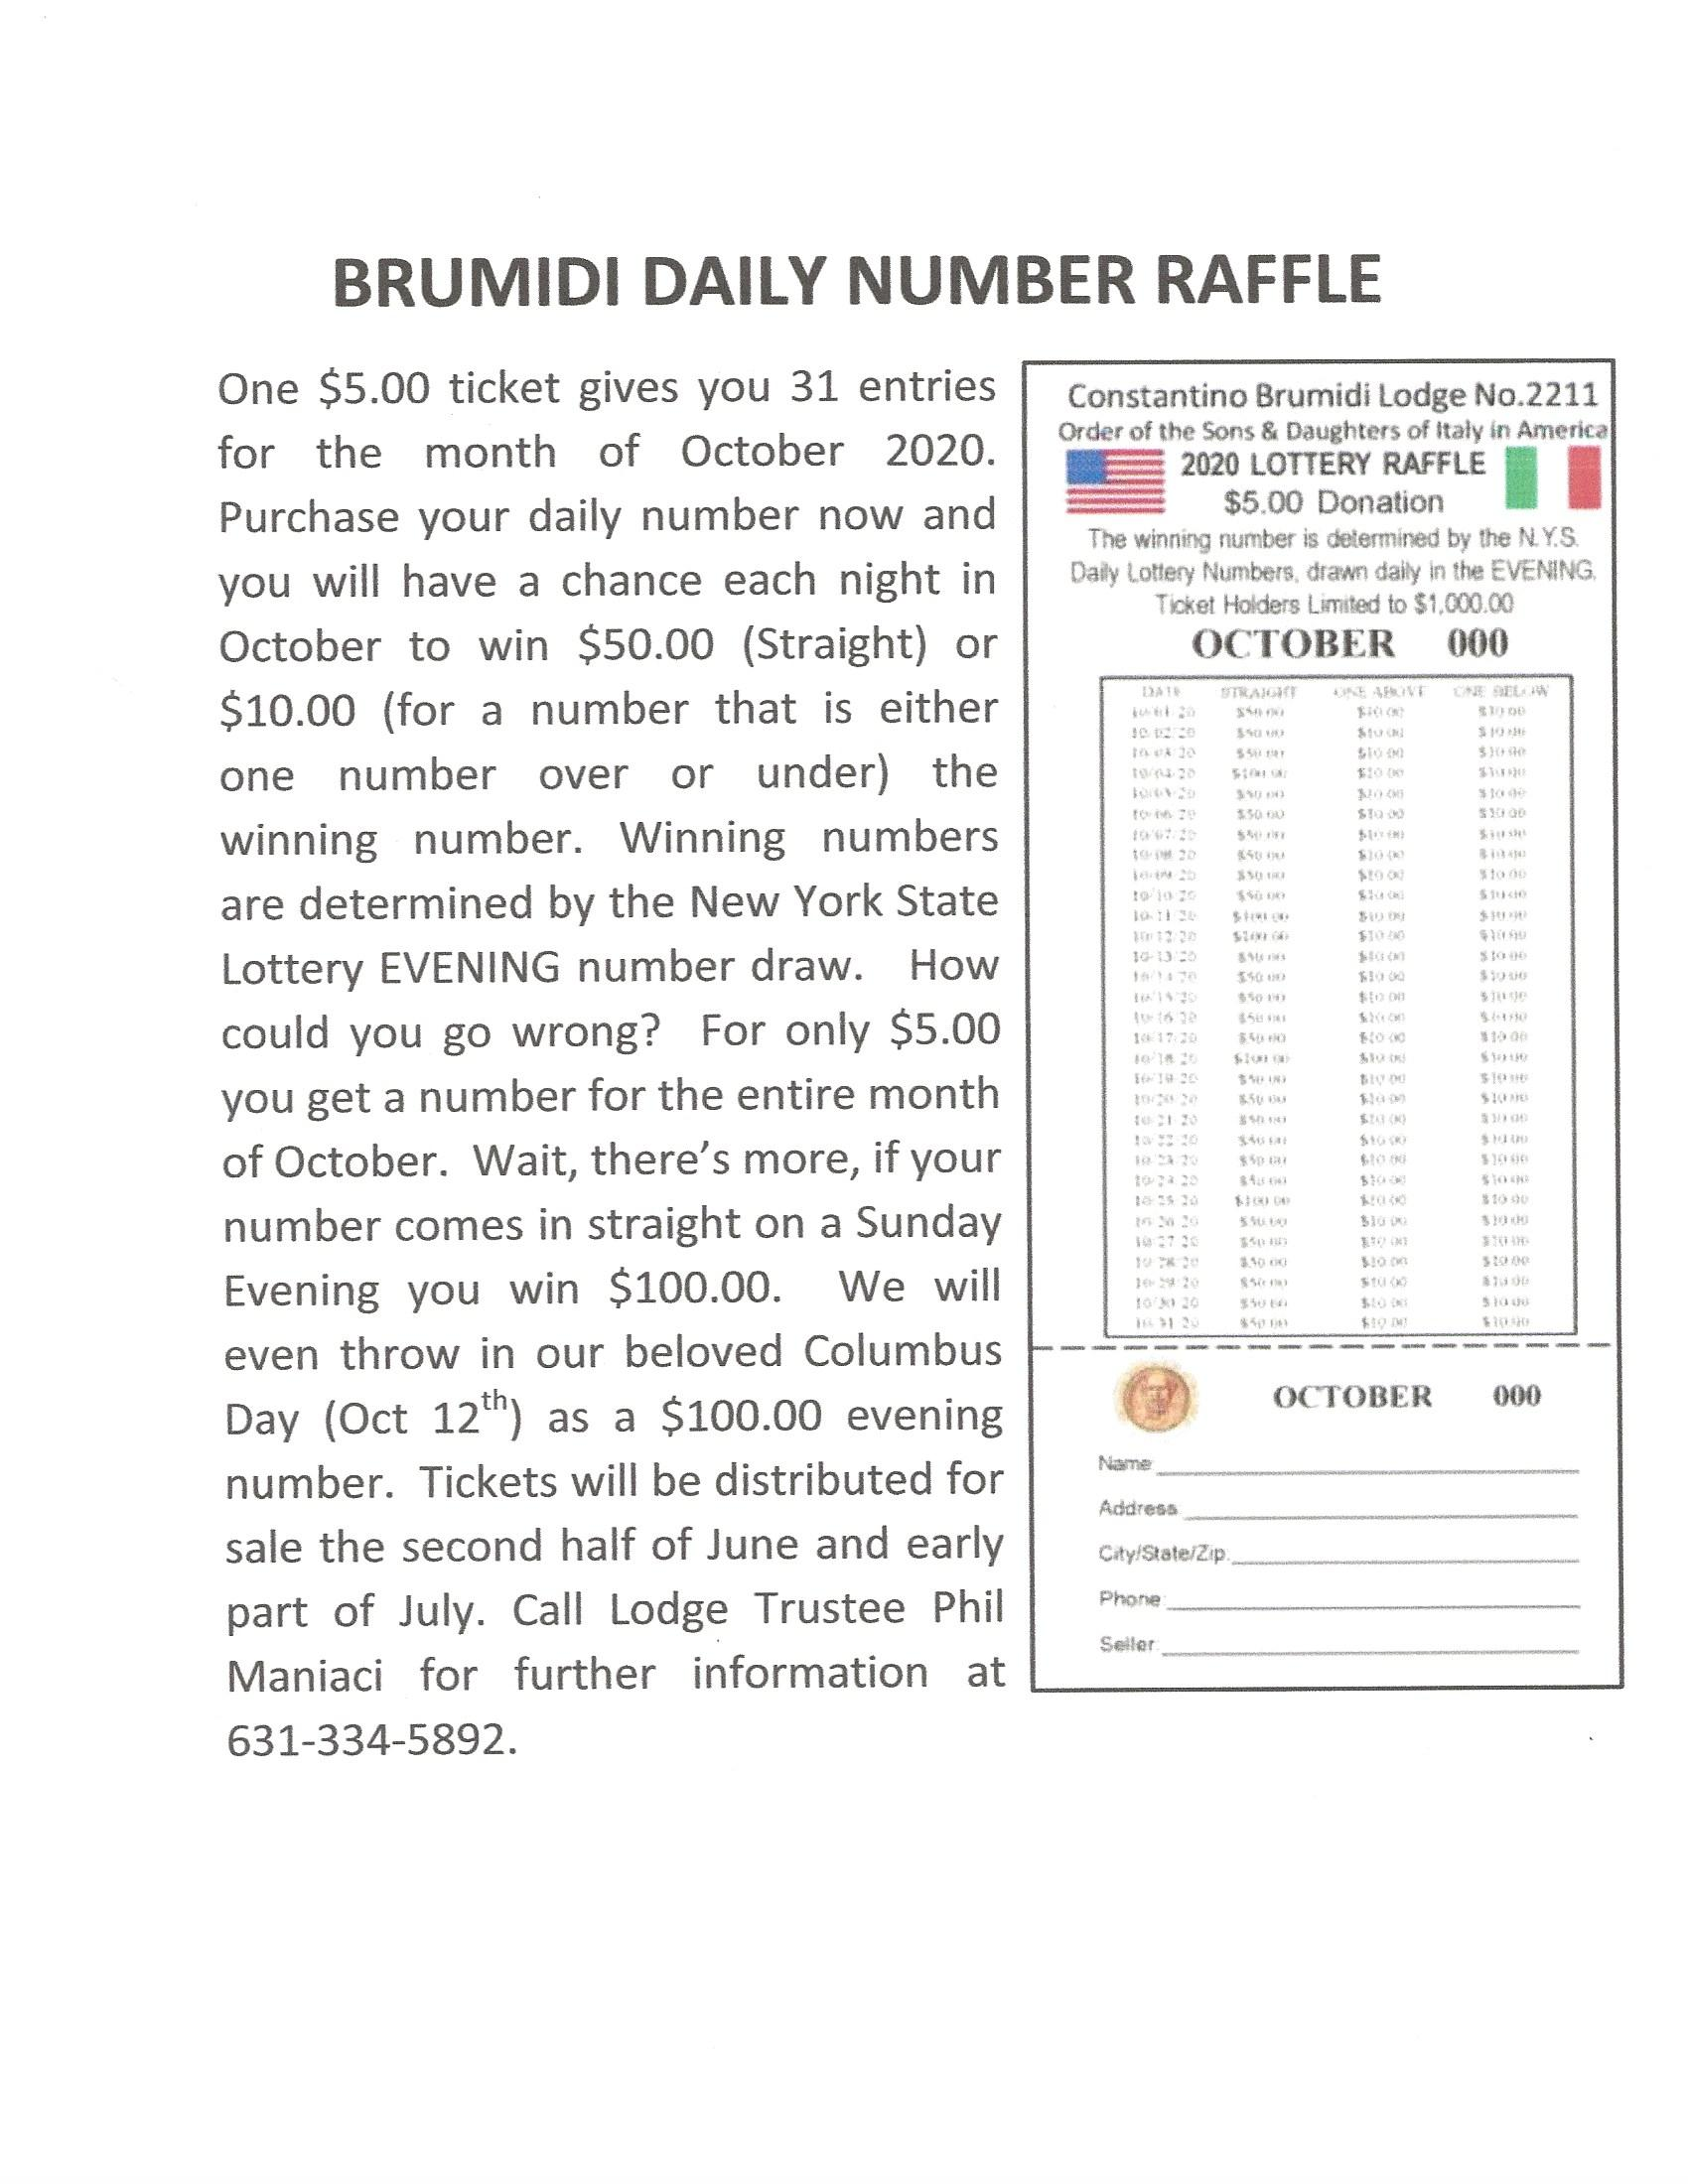 Daily Number Raffle Oct